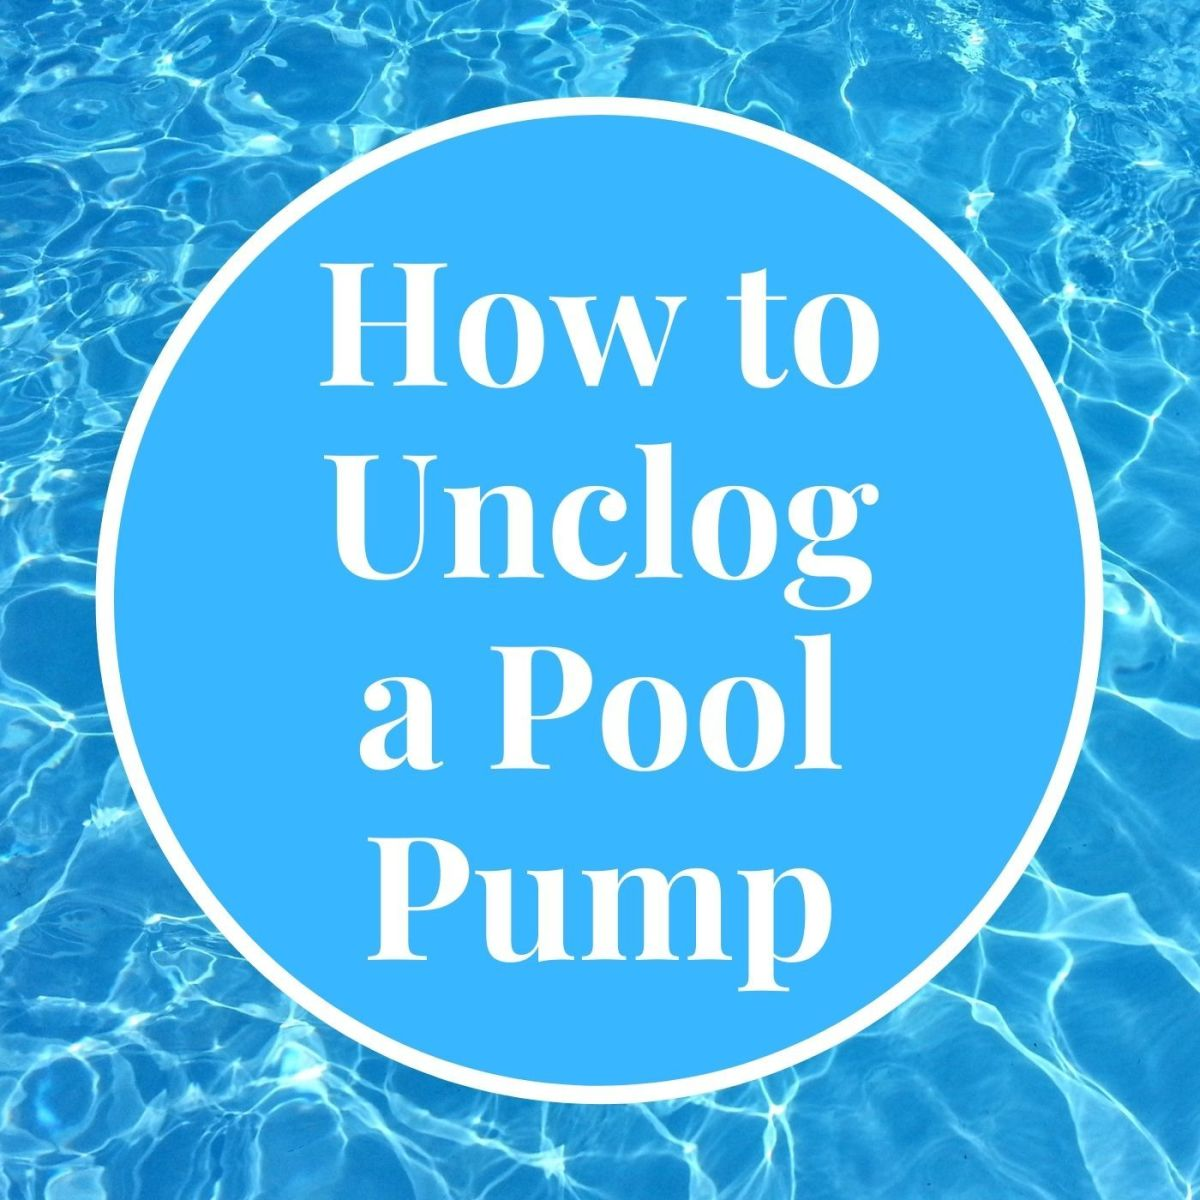 Pool pumps aren't impossible to clean!